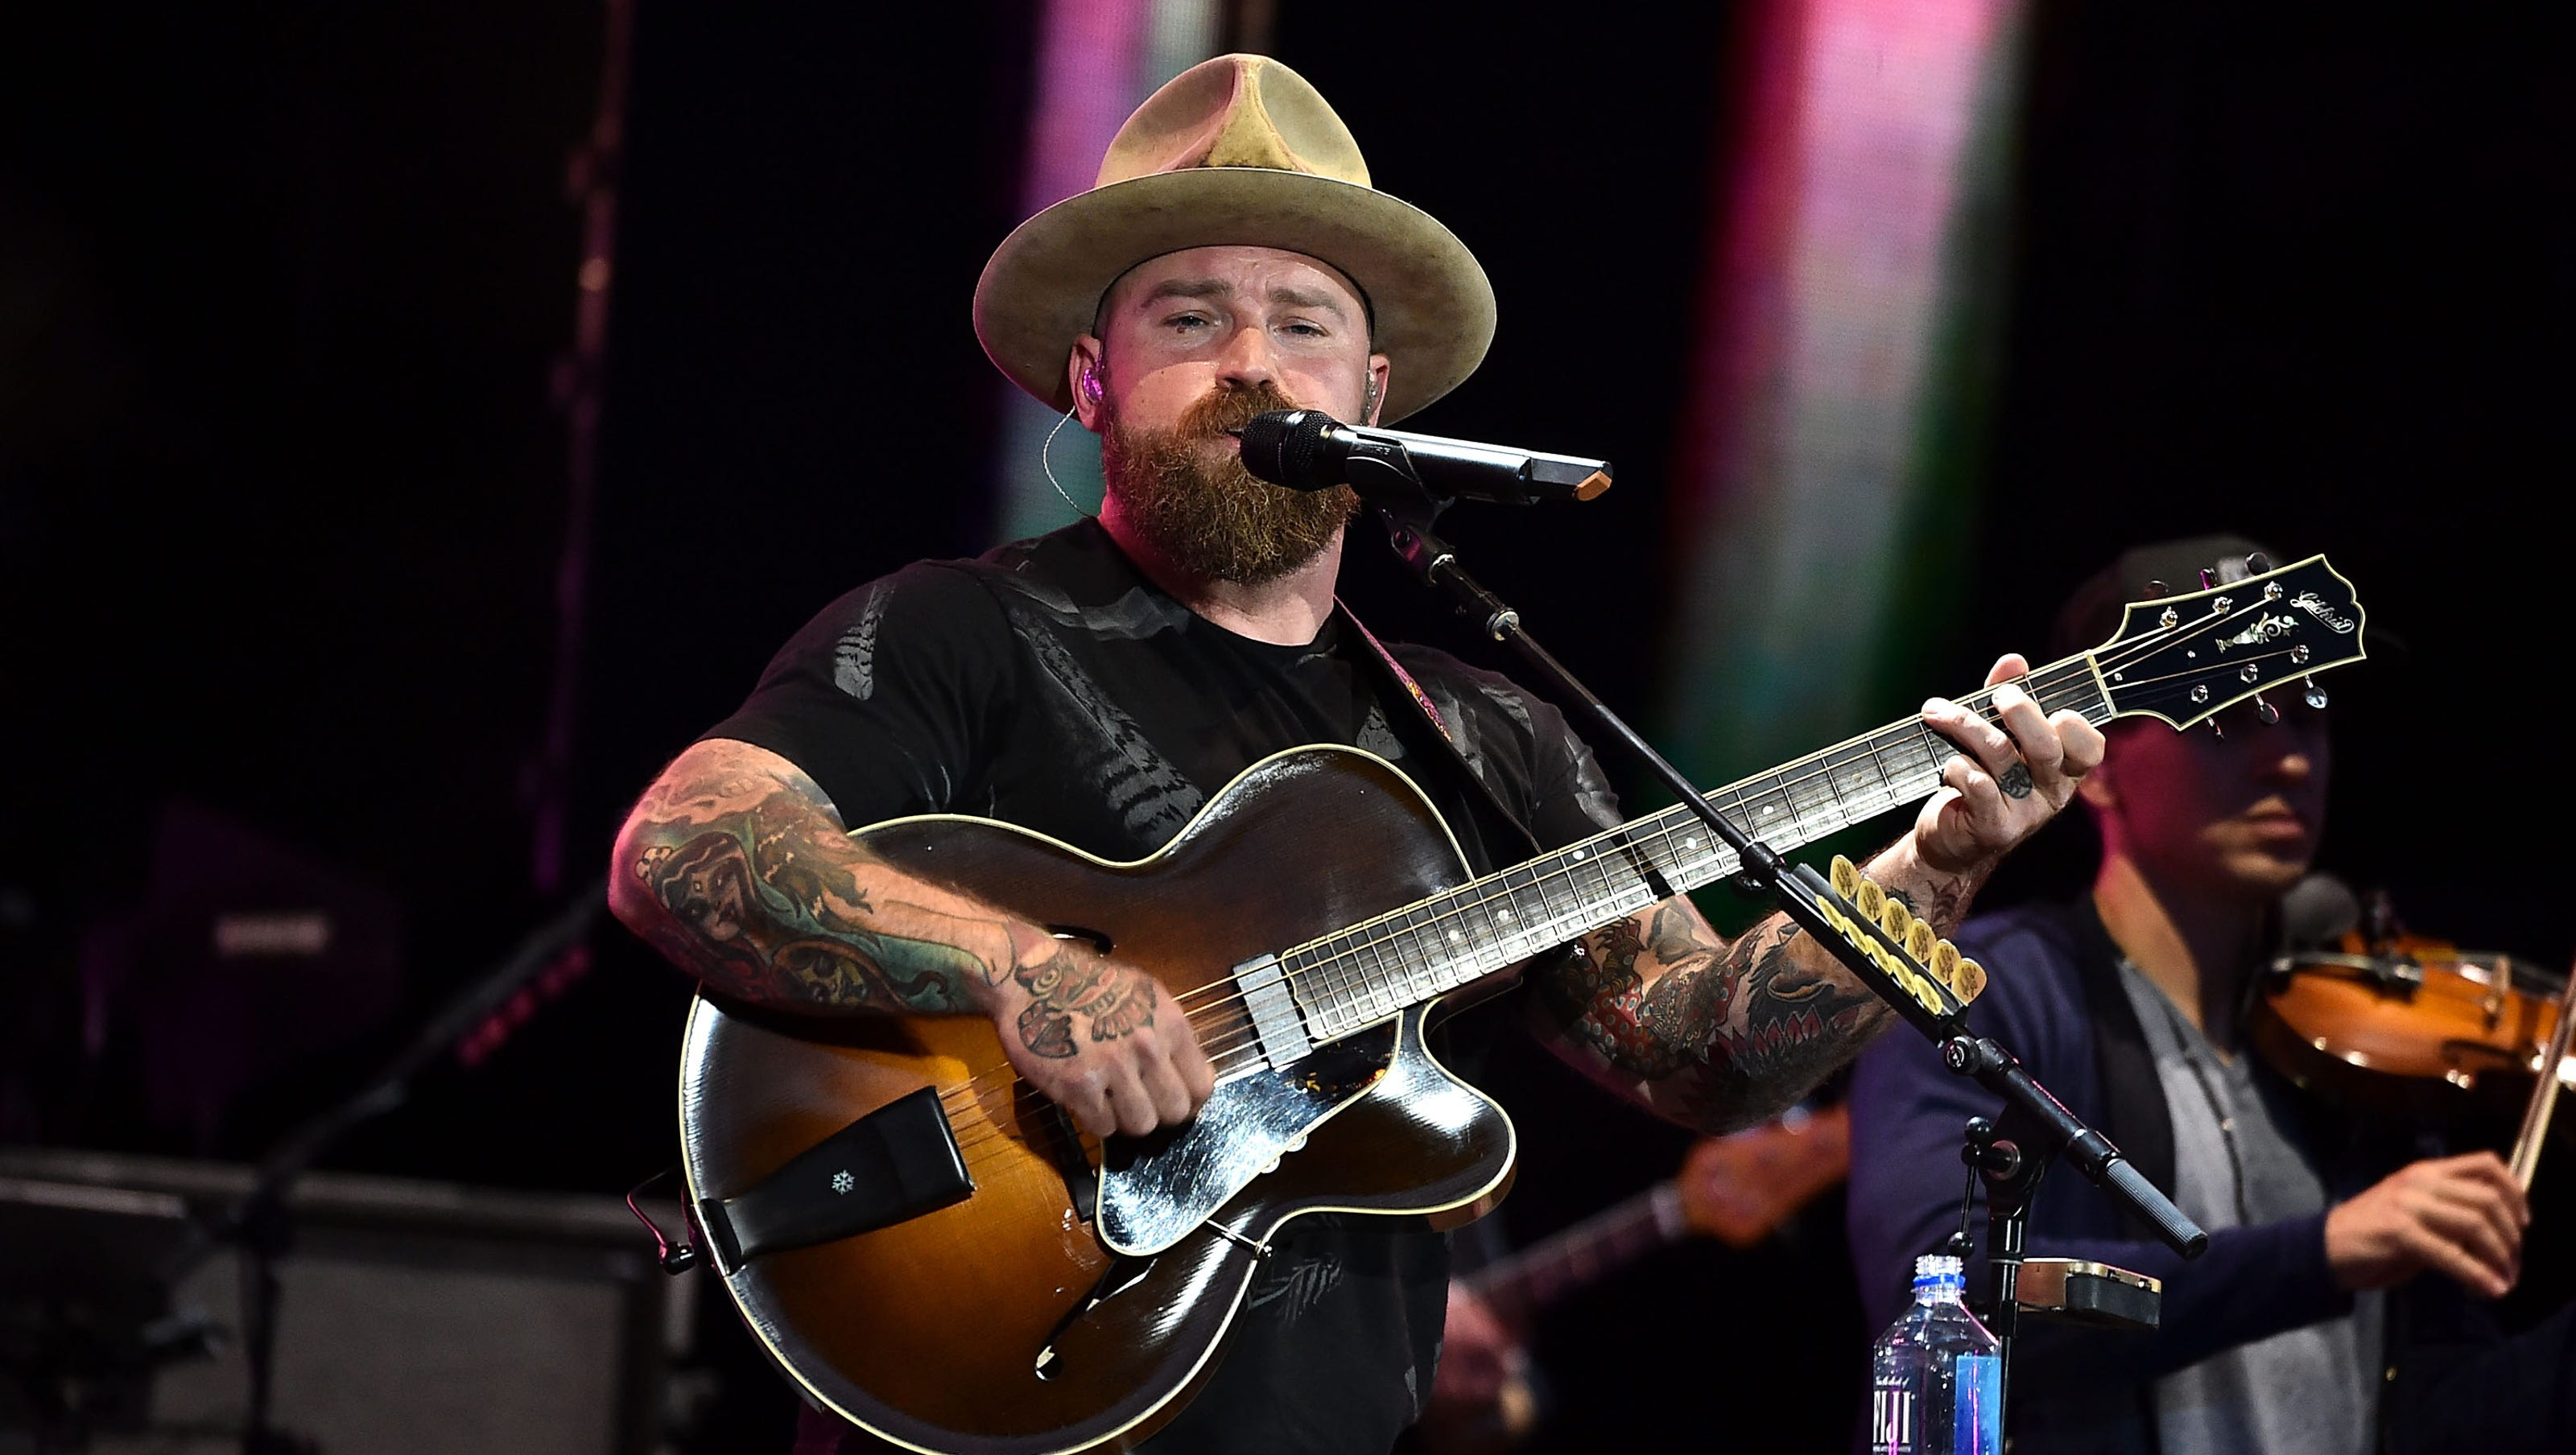 Country Star Zac Brown Wife Shelly Split After 12 Years Of Marriage